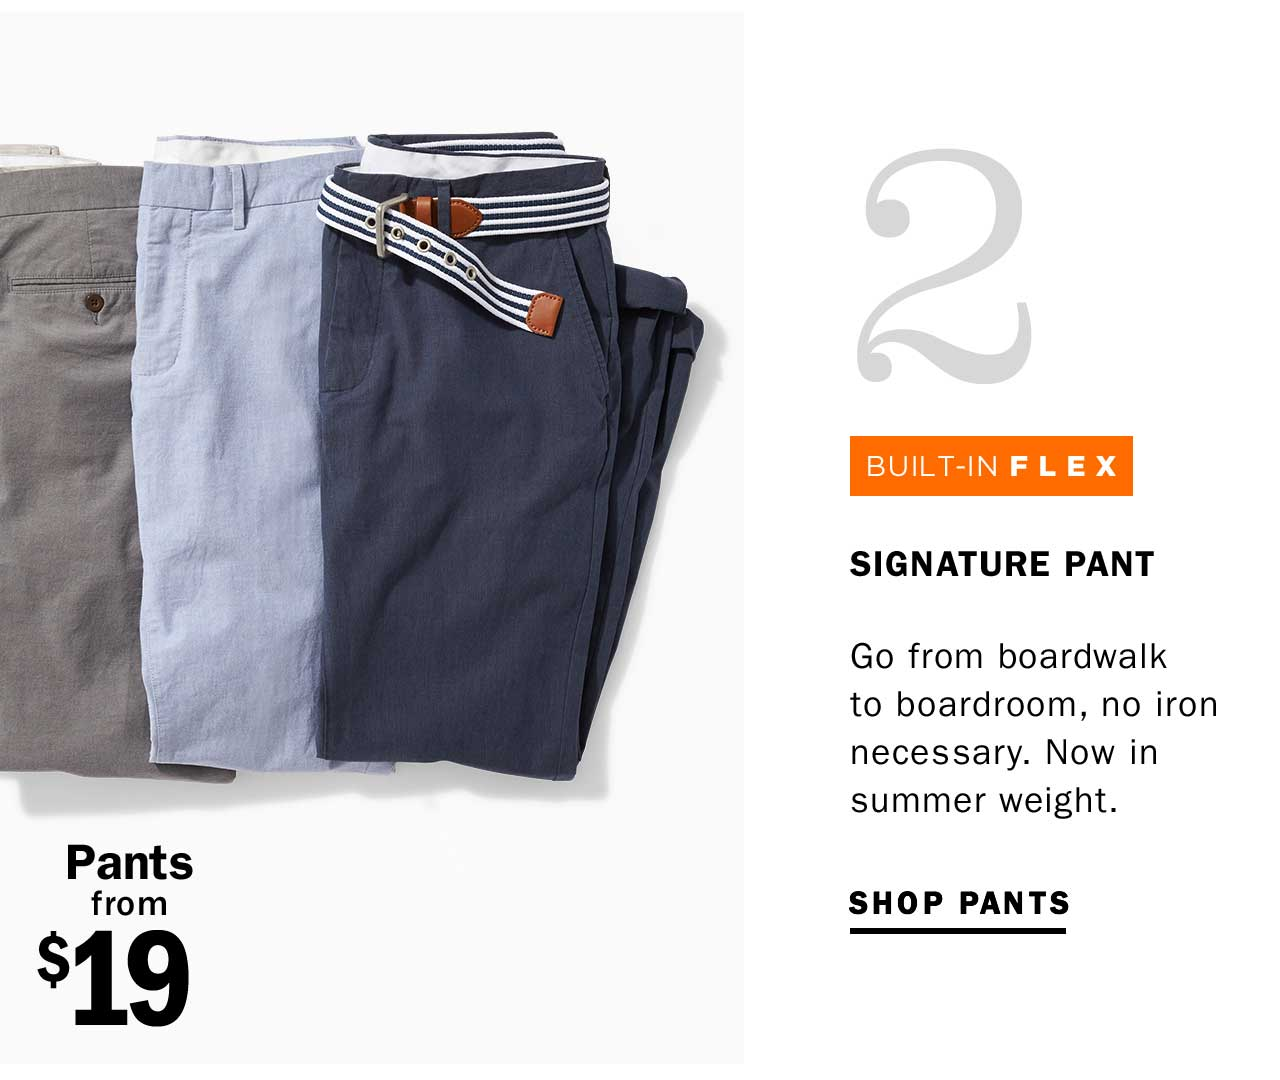 2 SIGNATURE PANT | SHOP PANTS | Pants from $19